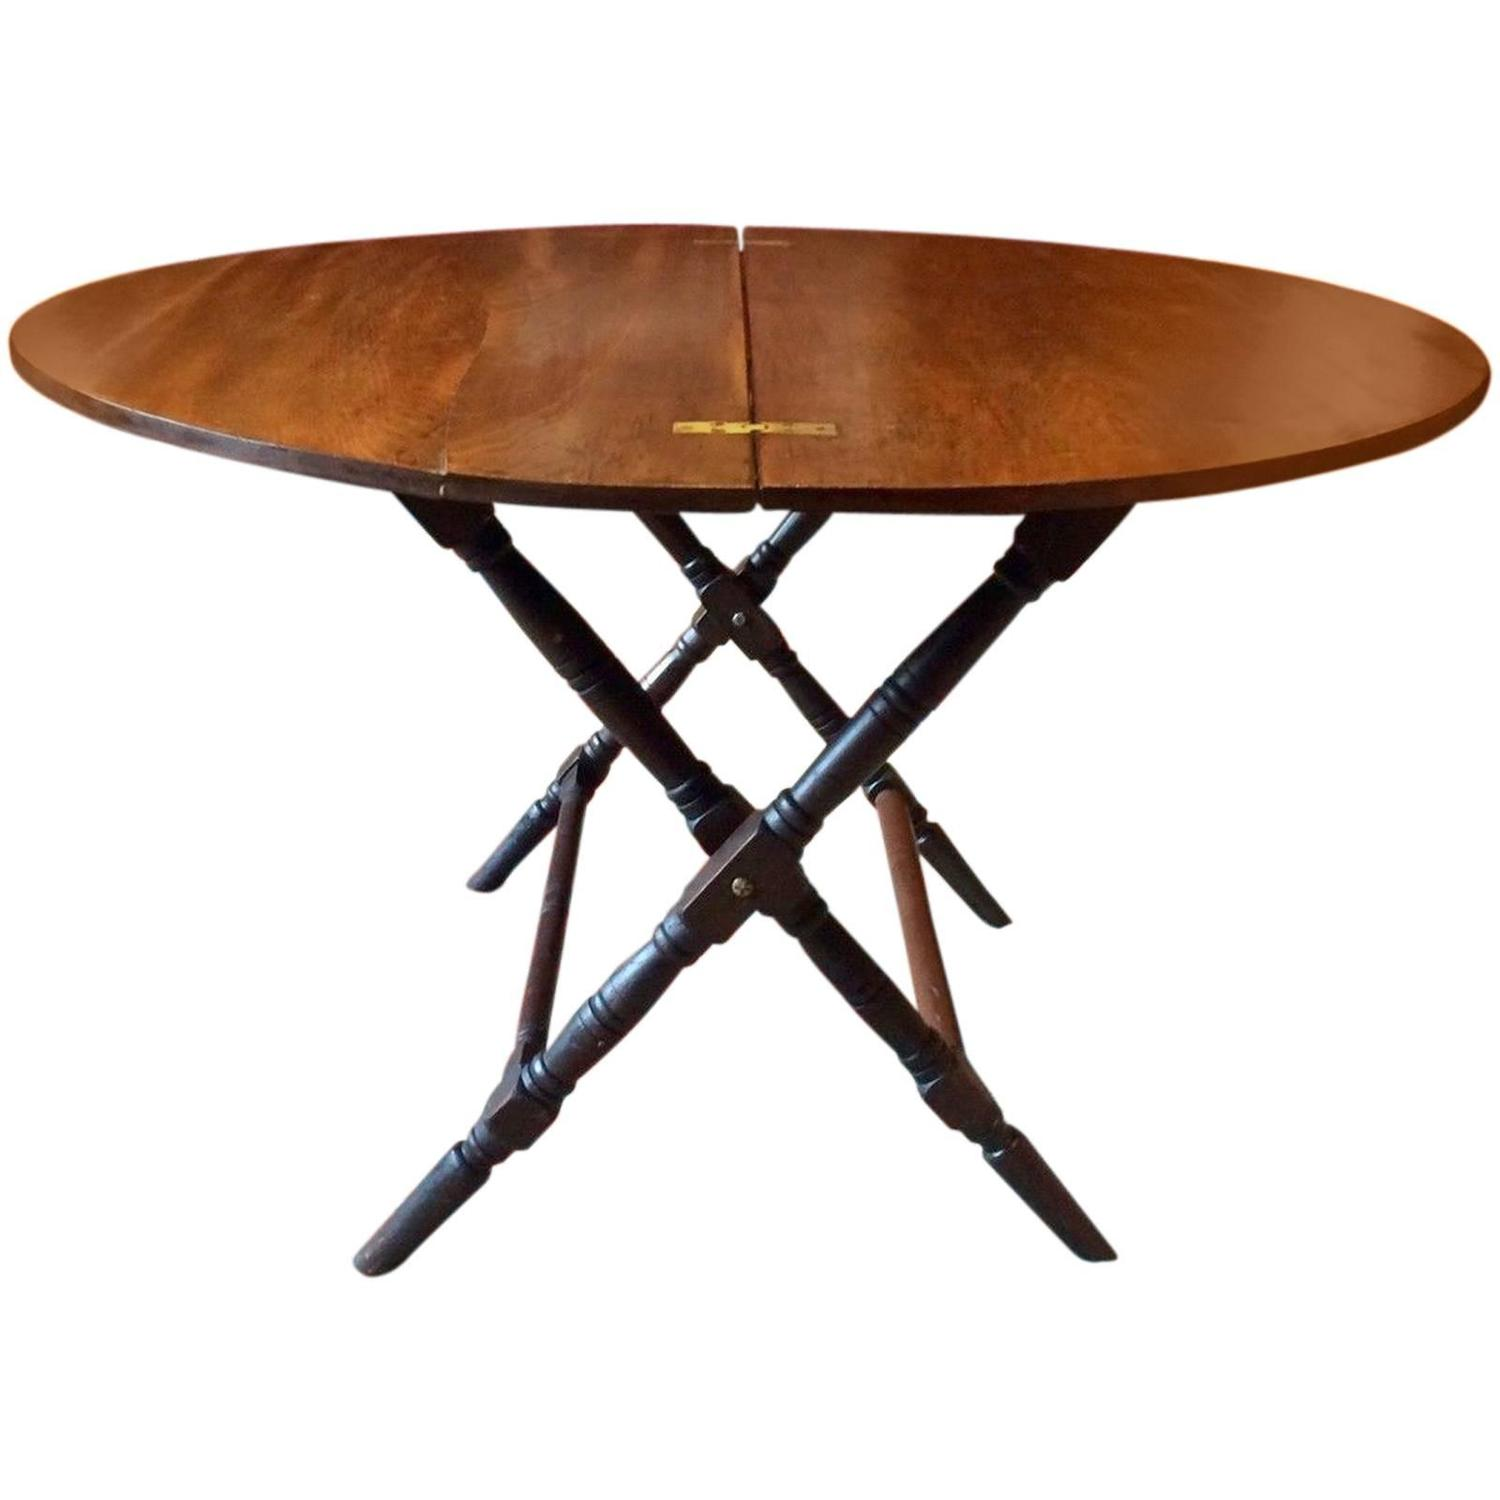 Antique 19th Century Mahogany Folding Campaign Table Thornton and